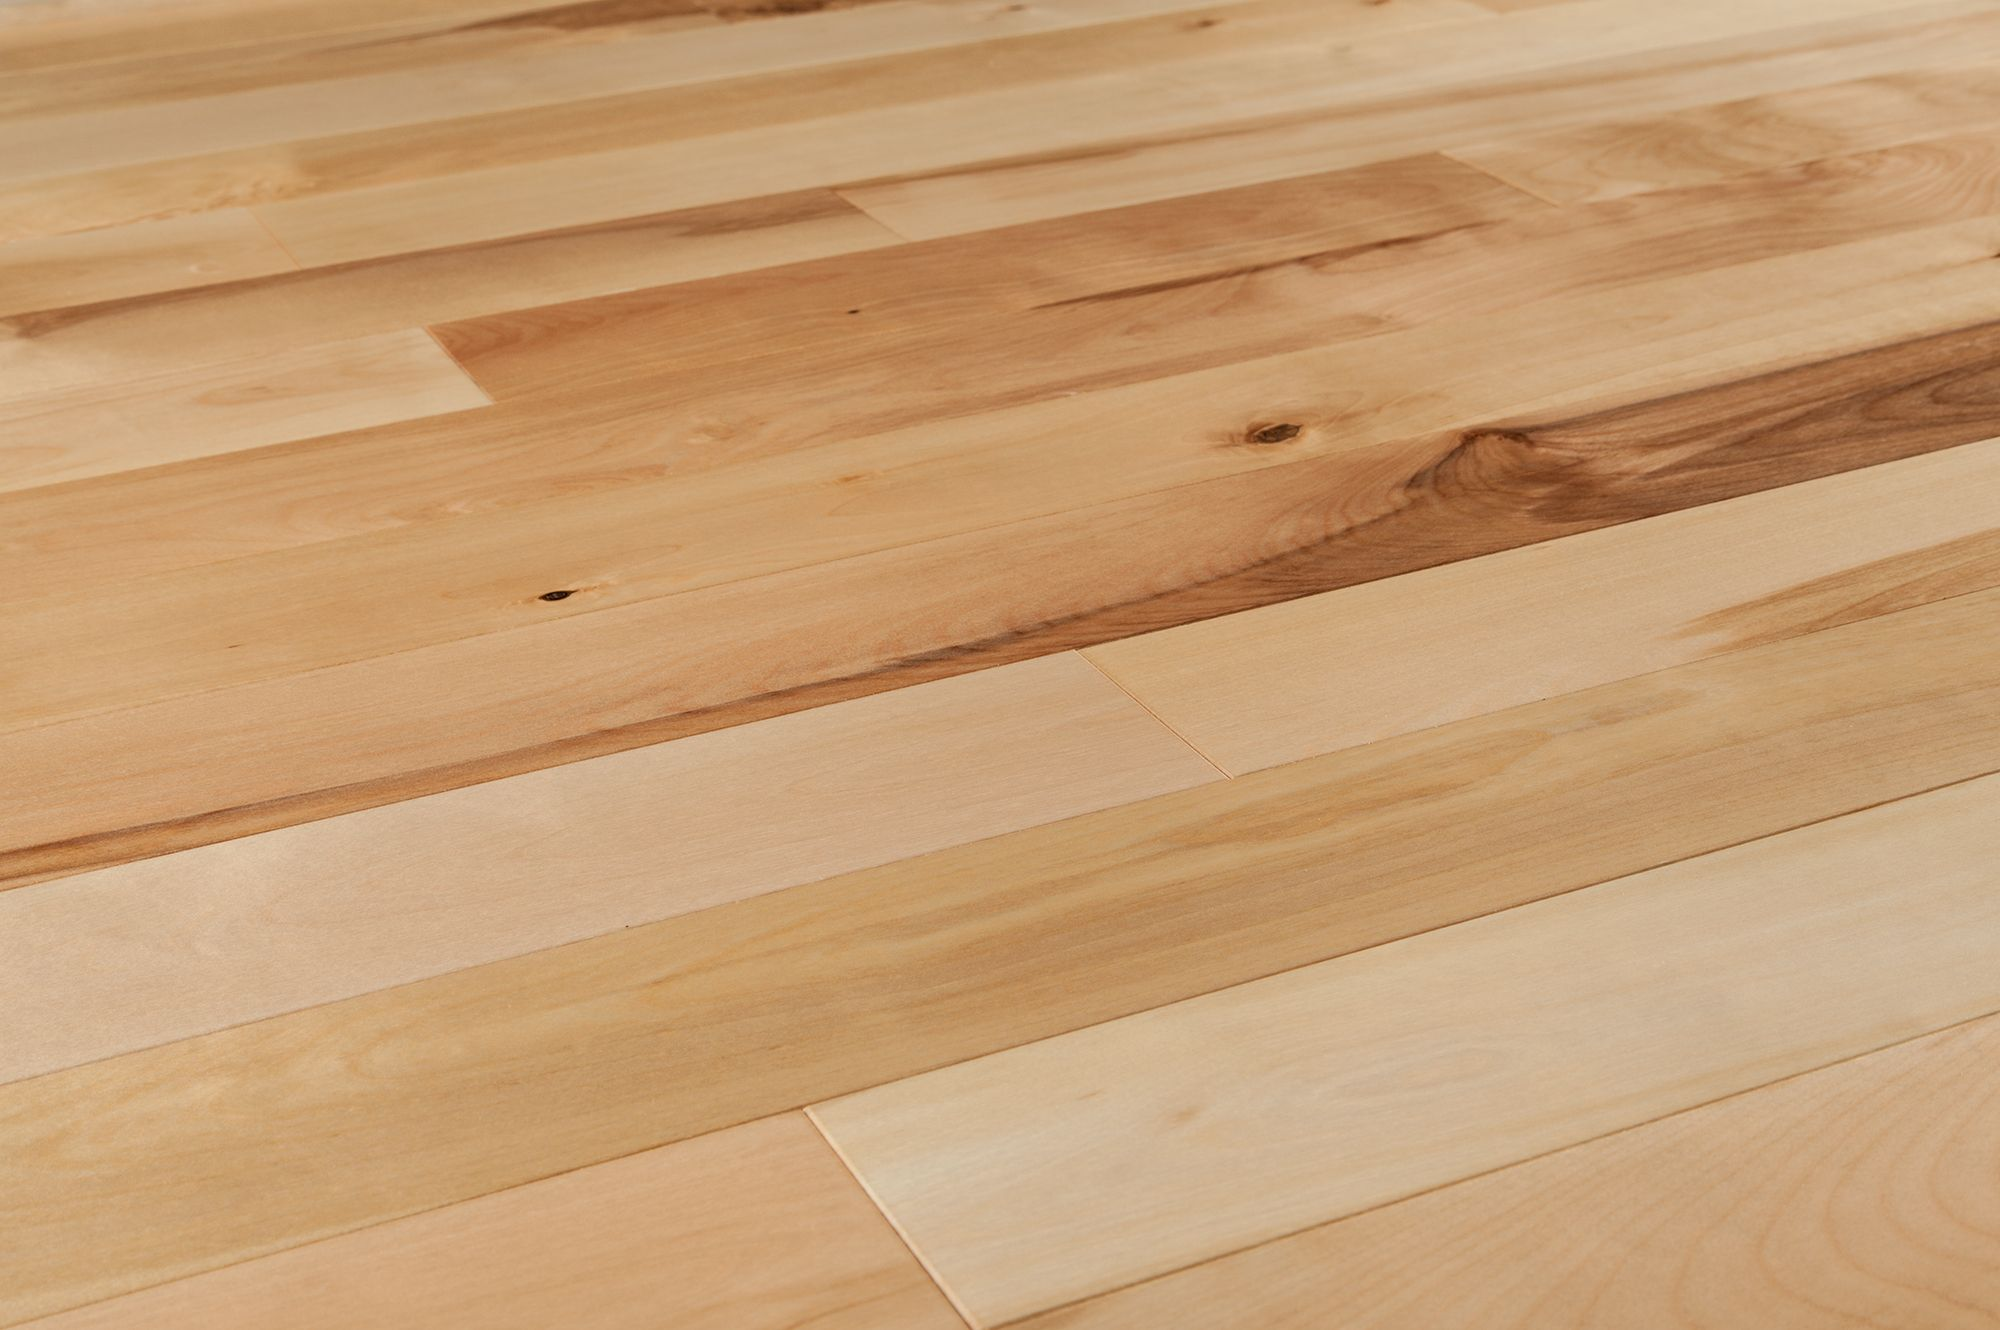 Builddirect Jasper Hardwood Canadian Northern Birch Mistral Collection Hardwood Hardwood Floors Birch Floors